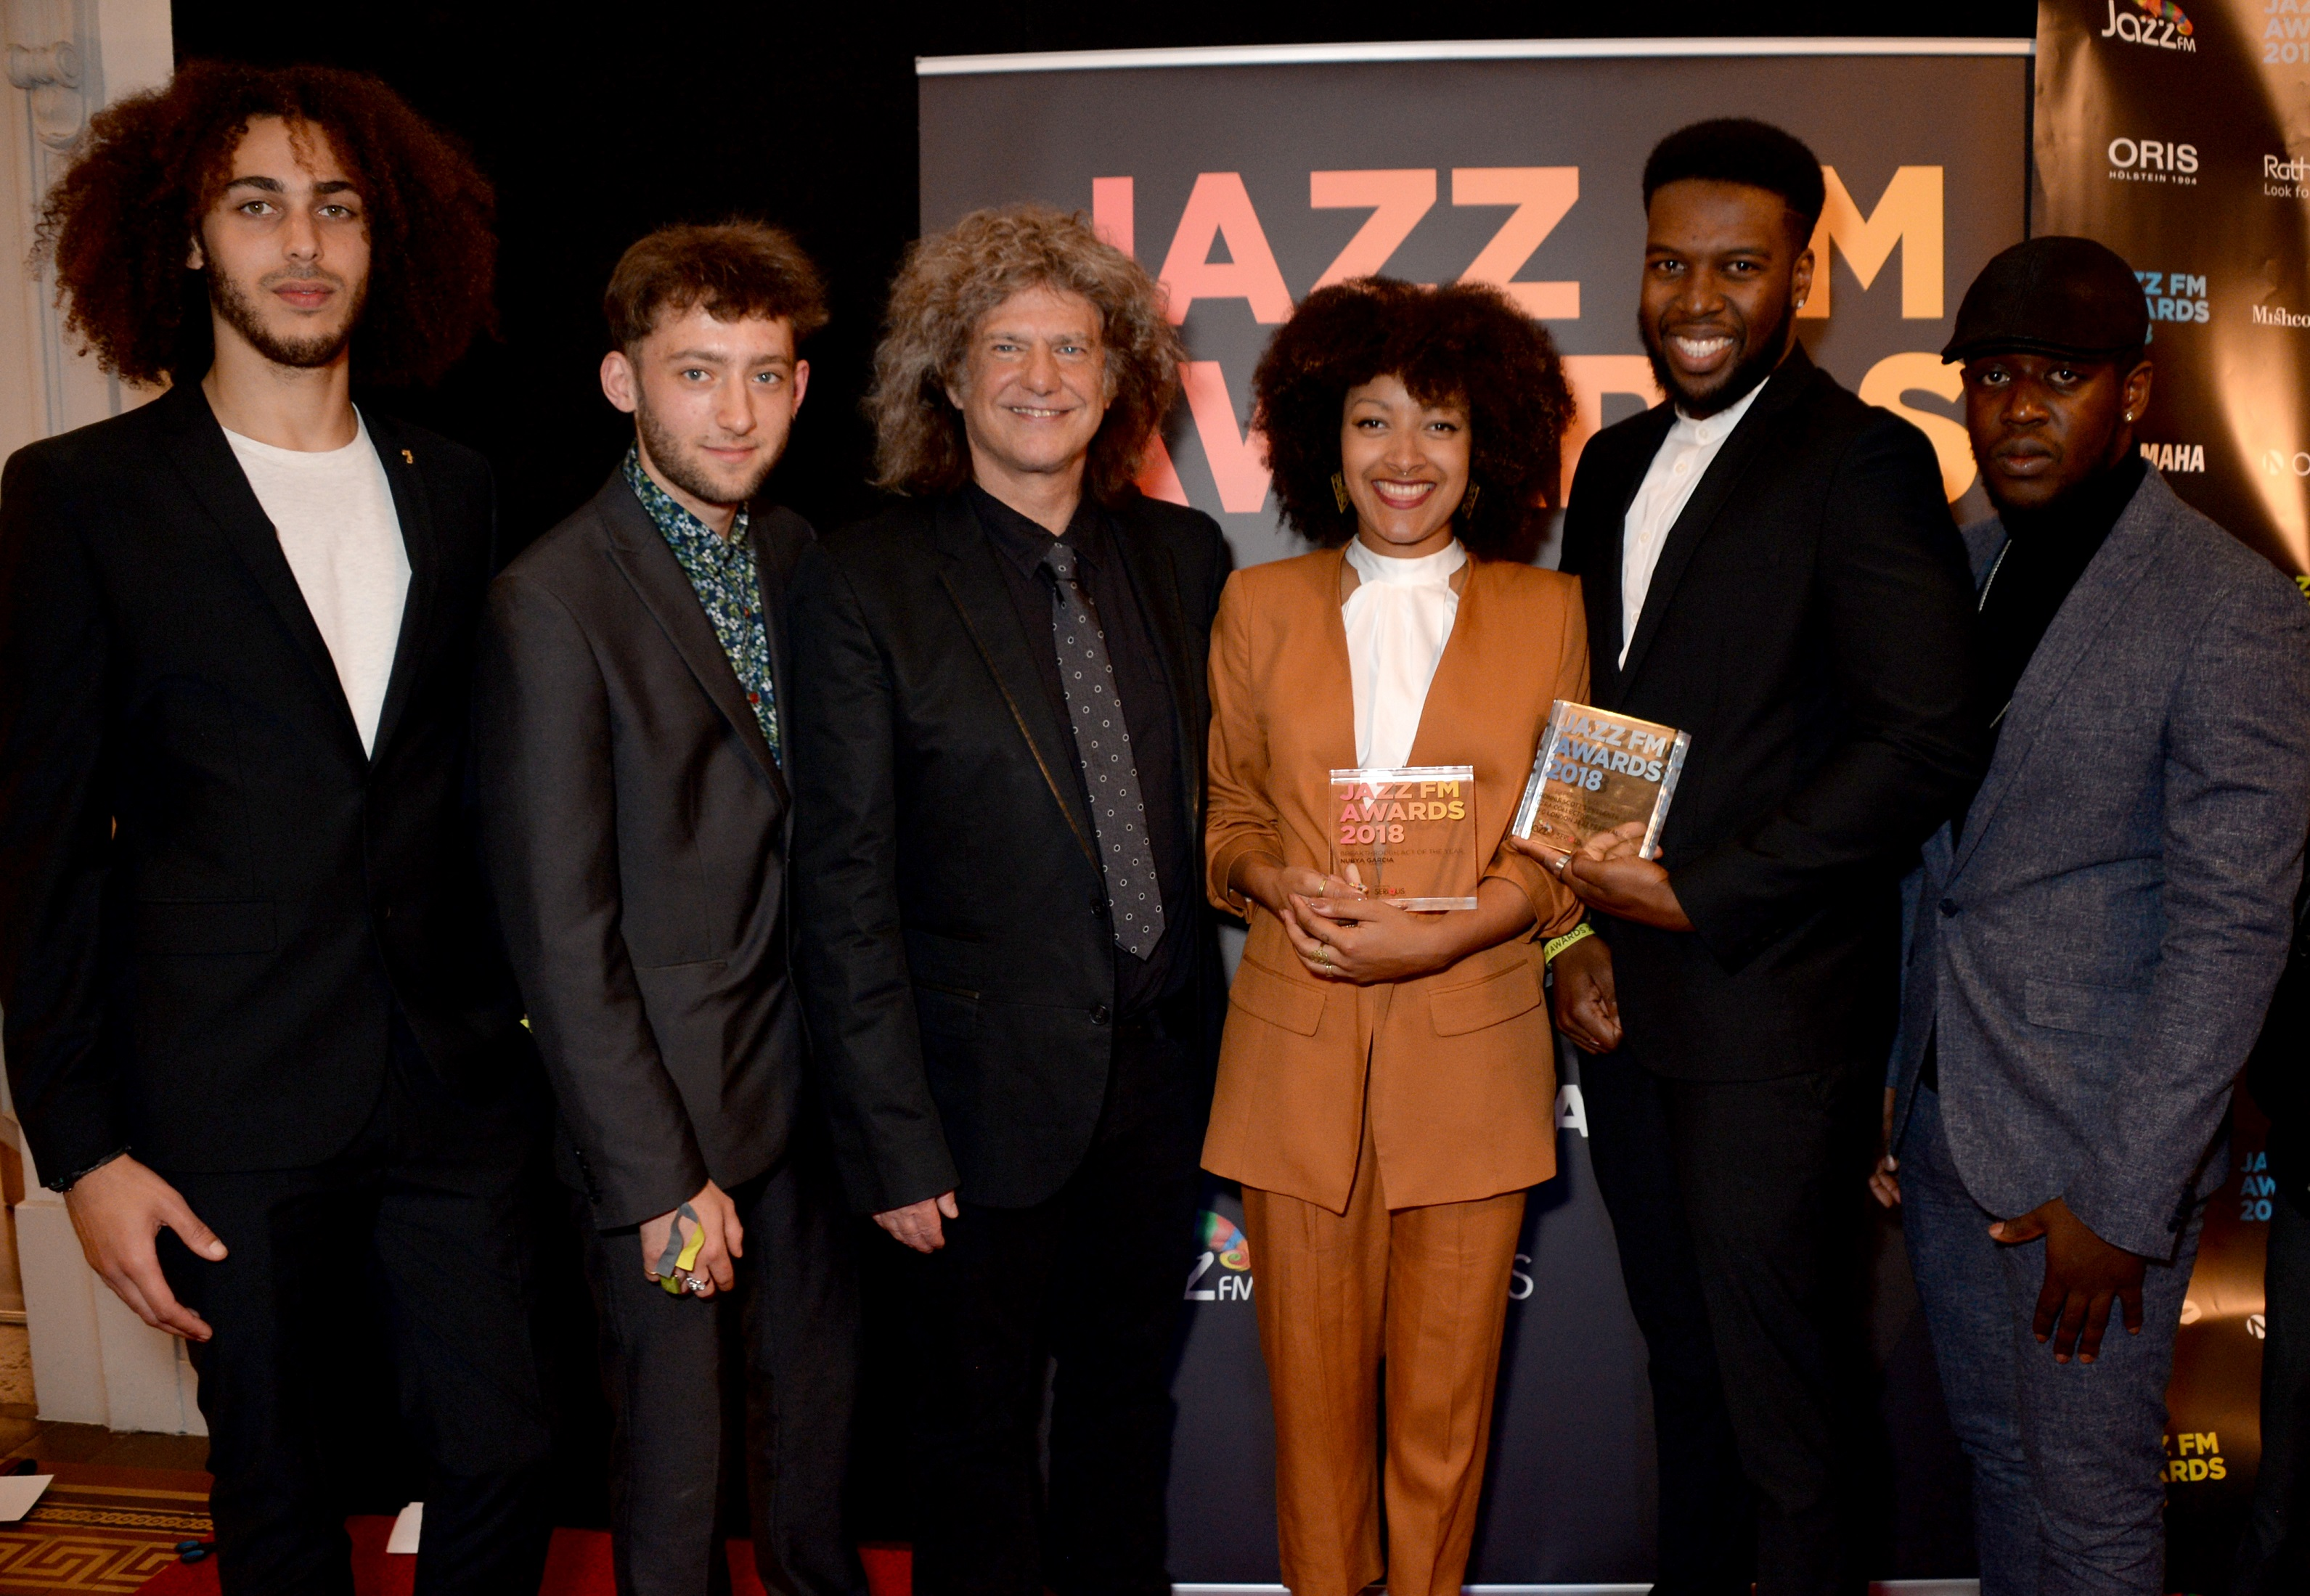 Nubya Garcia, Pat Metheny and members of Ezra Collective